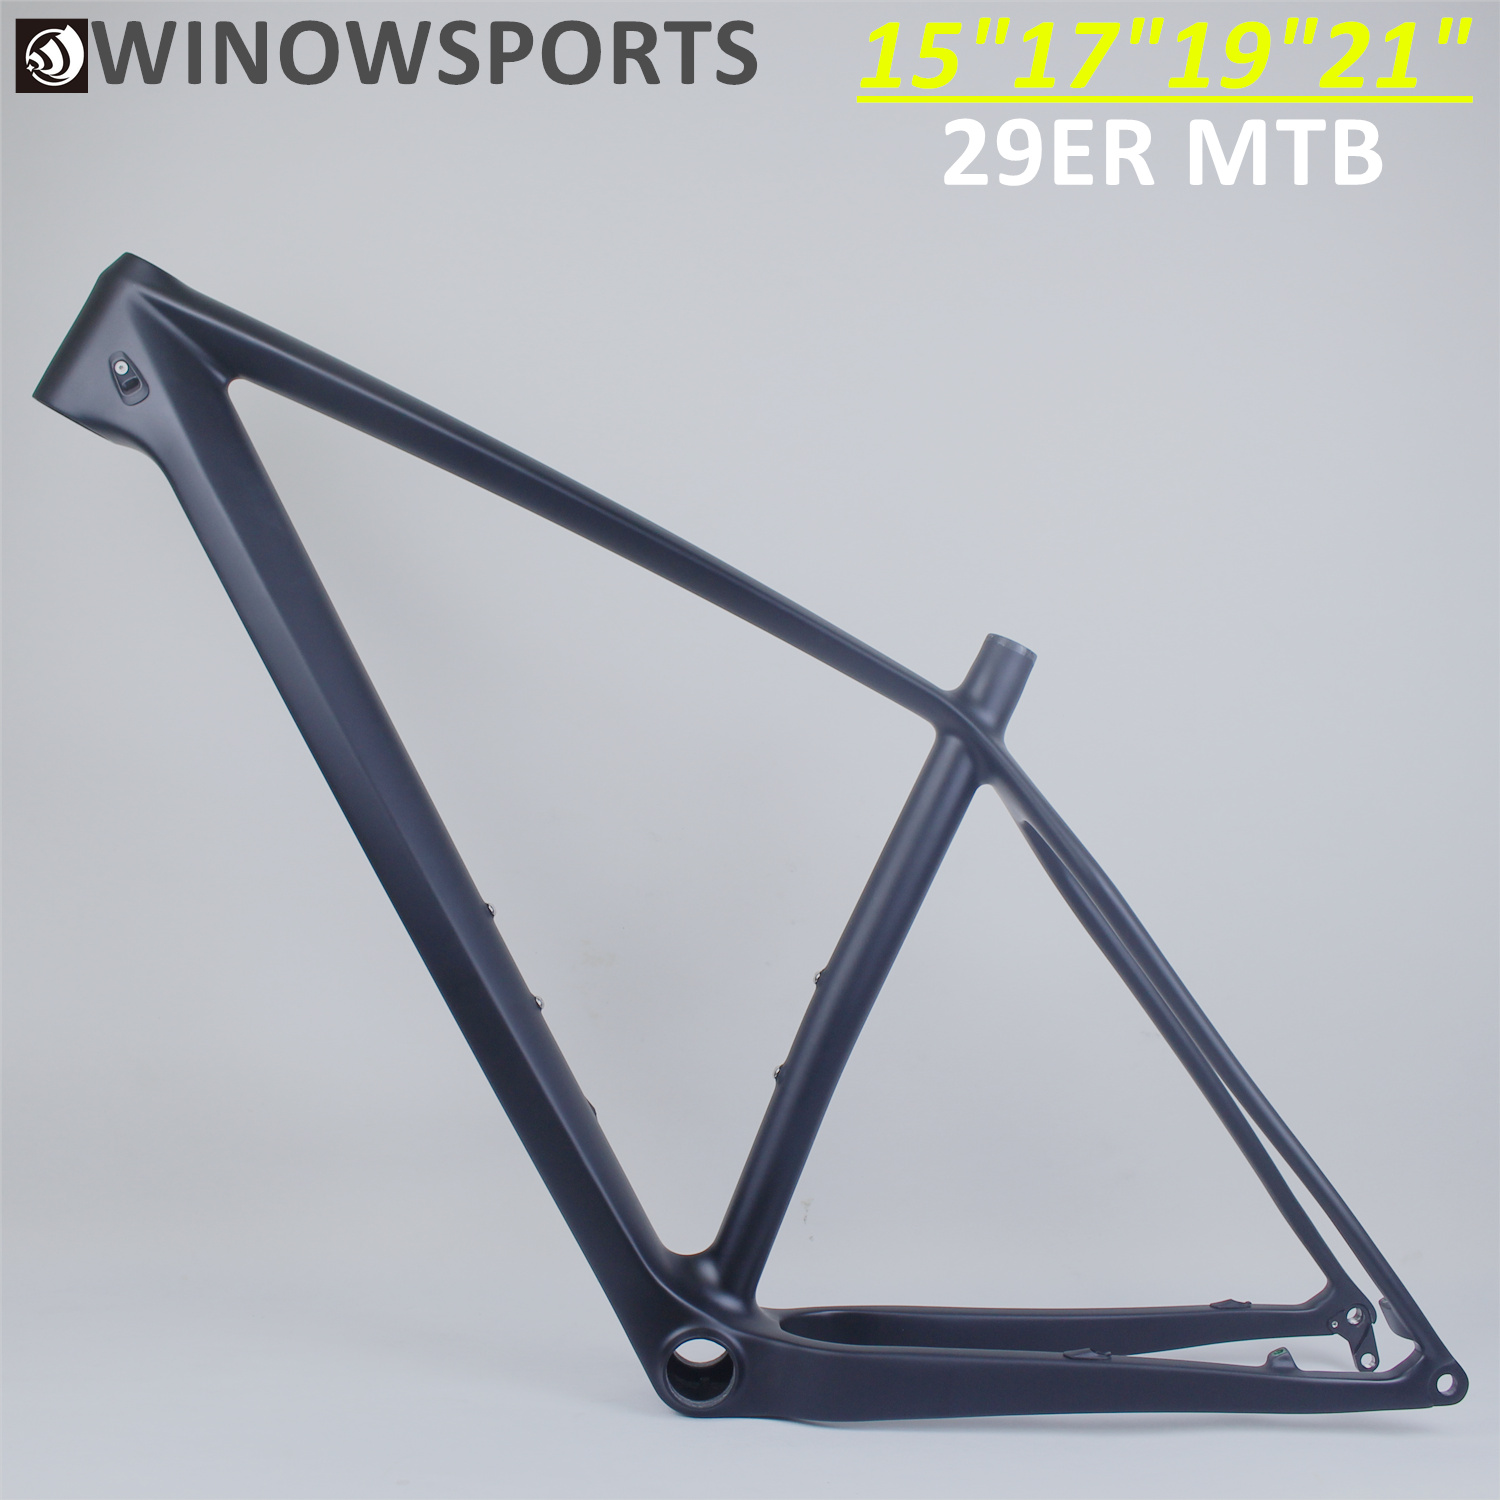 Winowsports 2020 chinês barato duro cauda de carbono mountain bike quadro 142*12mm/148*12mm 29er impulso mtb 15 17 19 21